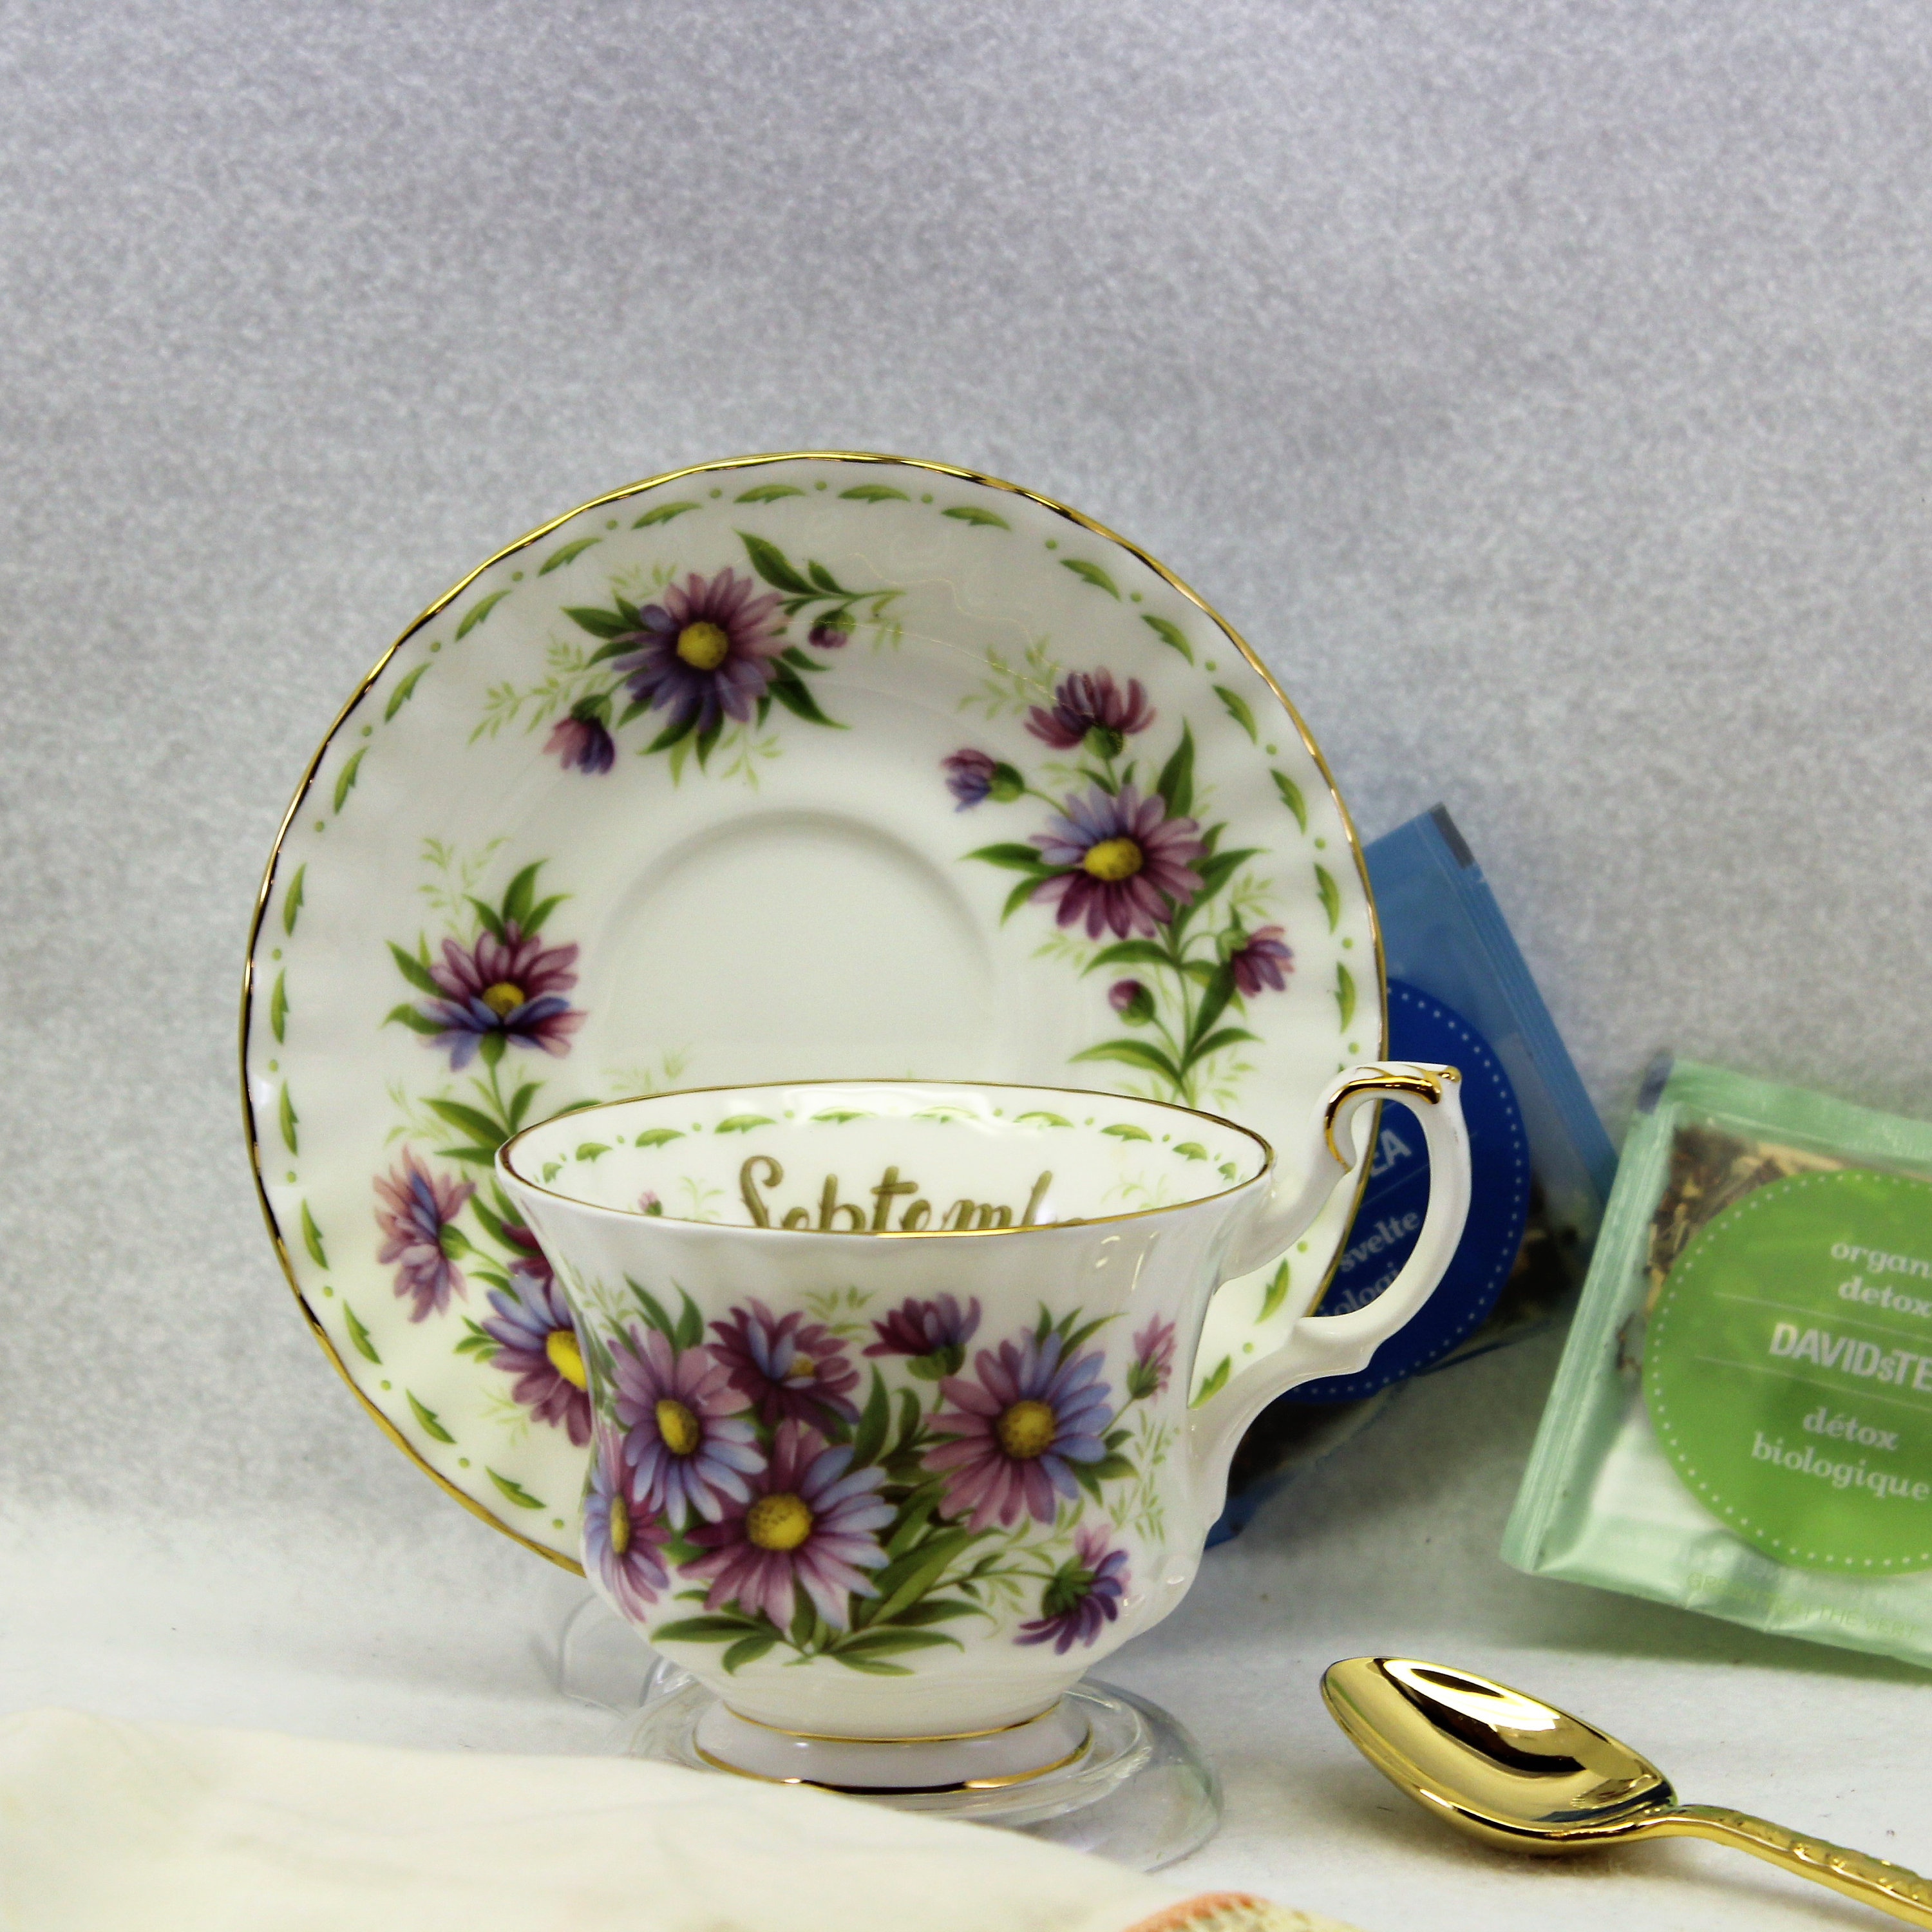 Royal albert tea cup collectible flower of the month september flower of the month september michaelmas daisy anniversary gift birthday gift gallery photo izmirmasajfo